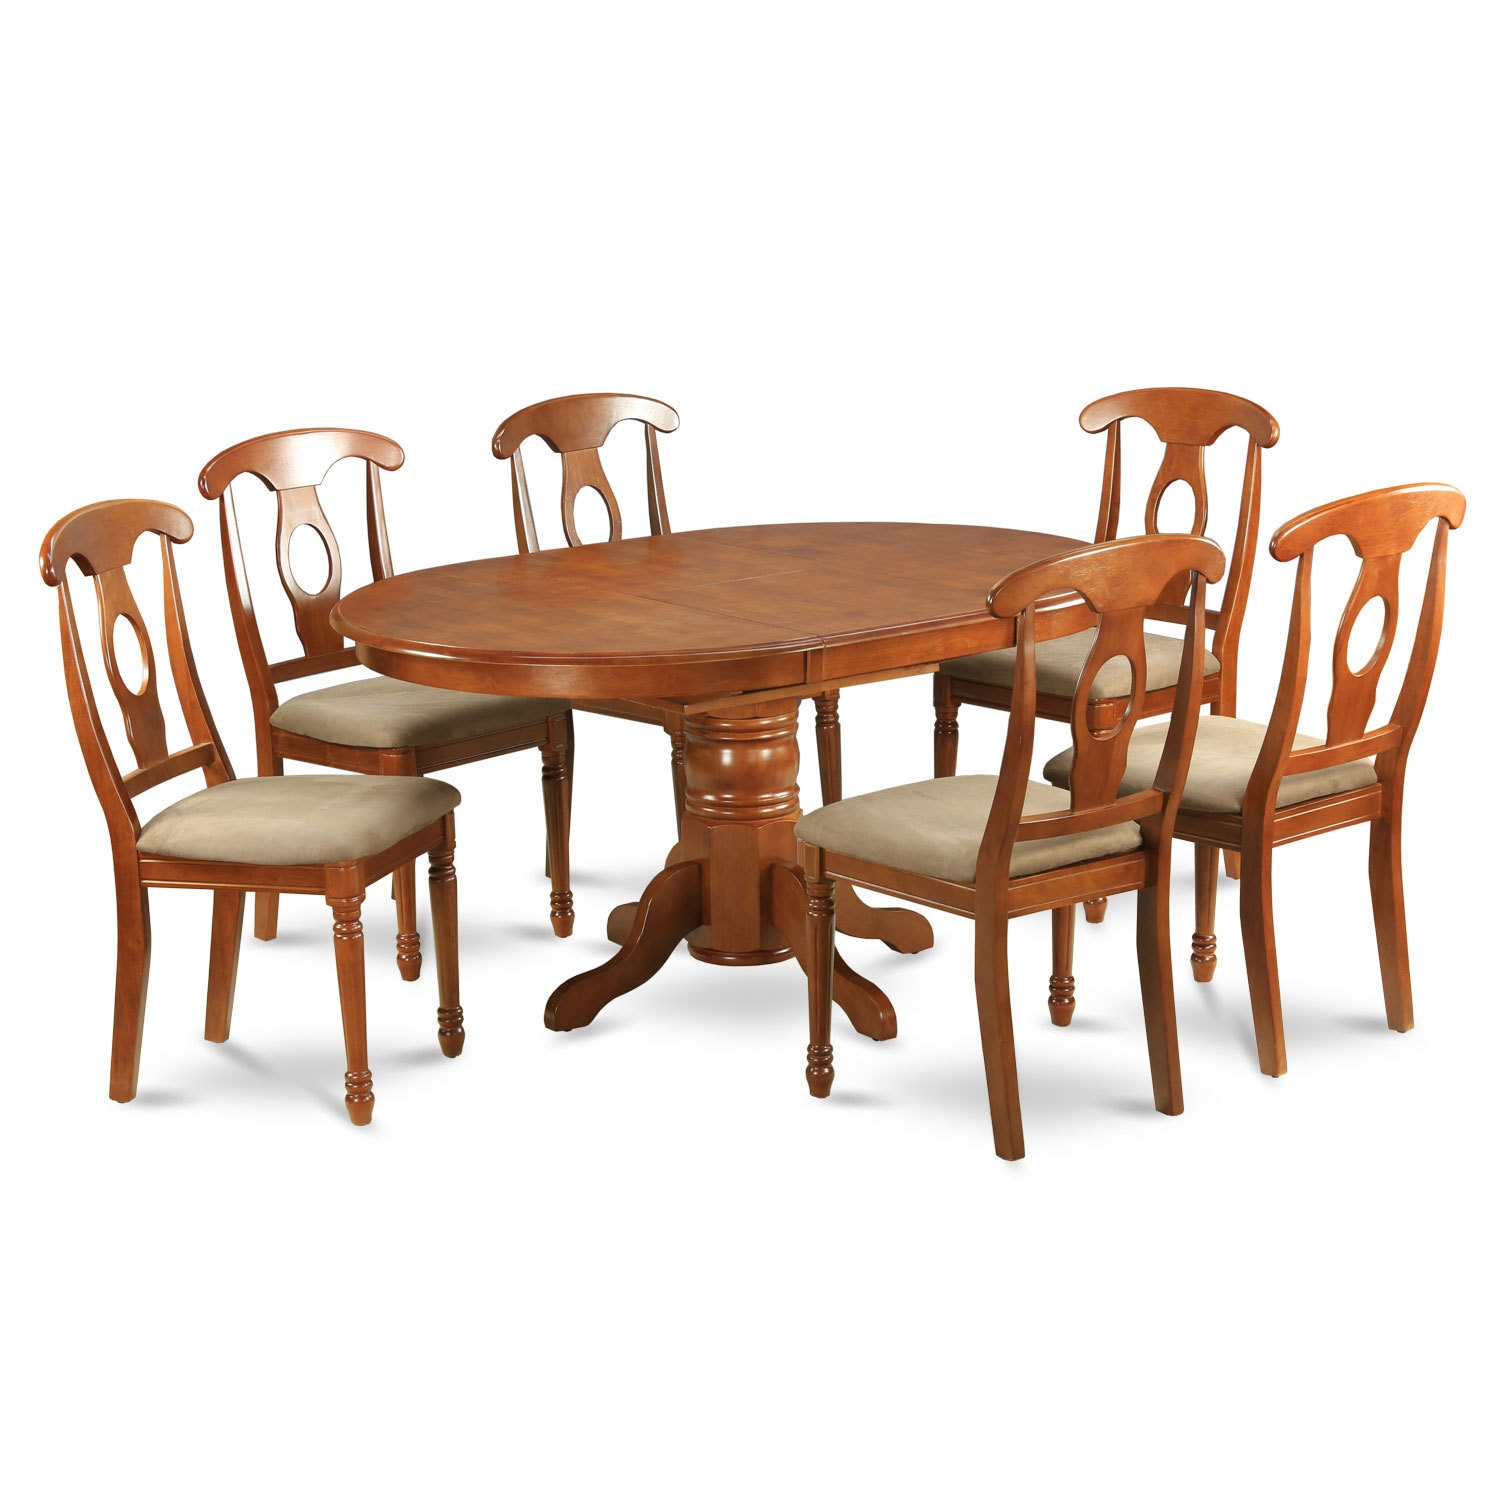 Splendid 5-piece Dining Table Having Leaf and 4 Kitchen C...